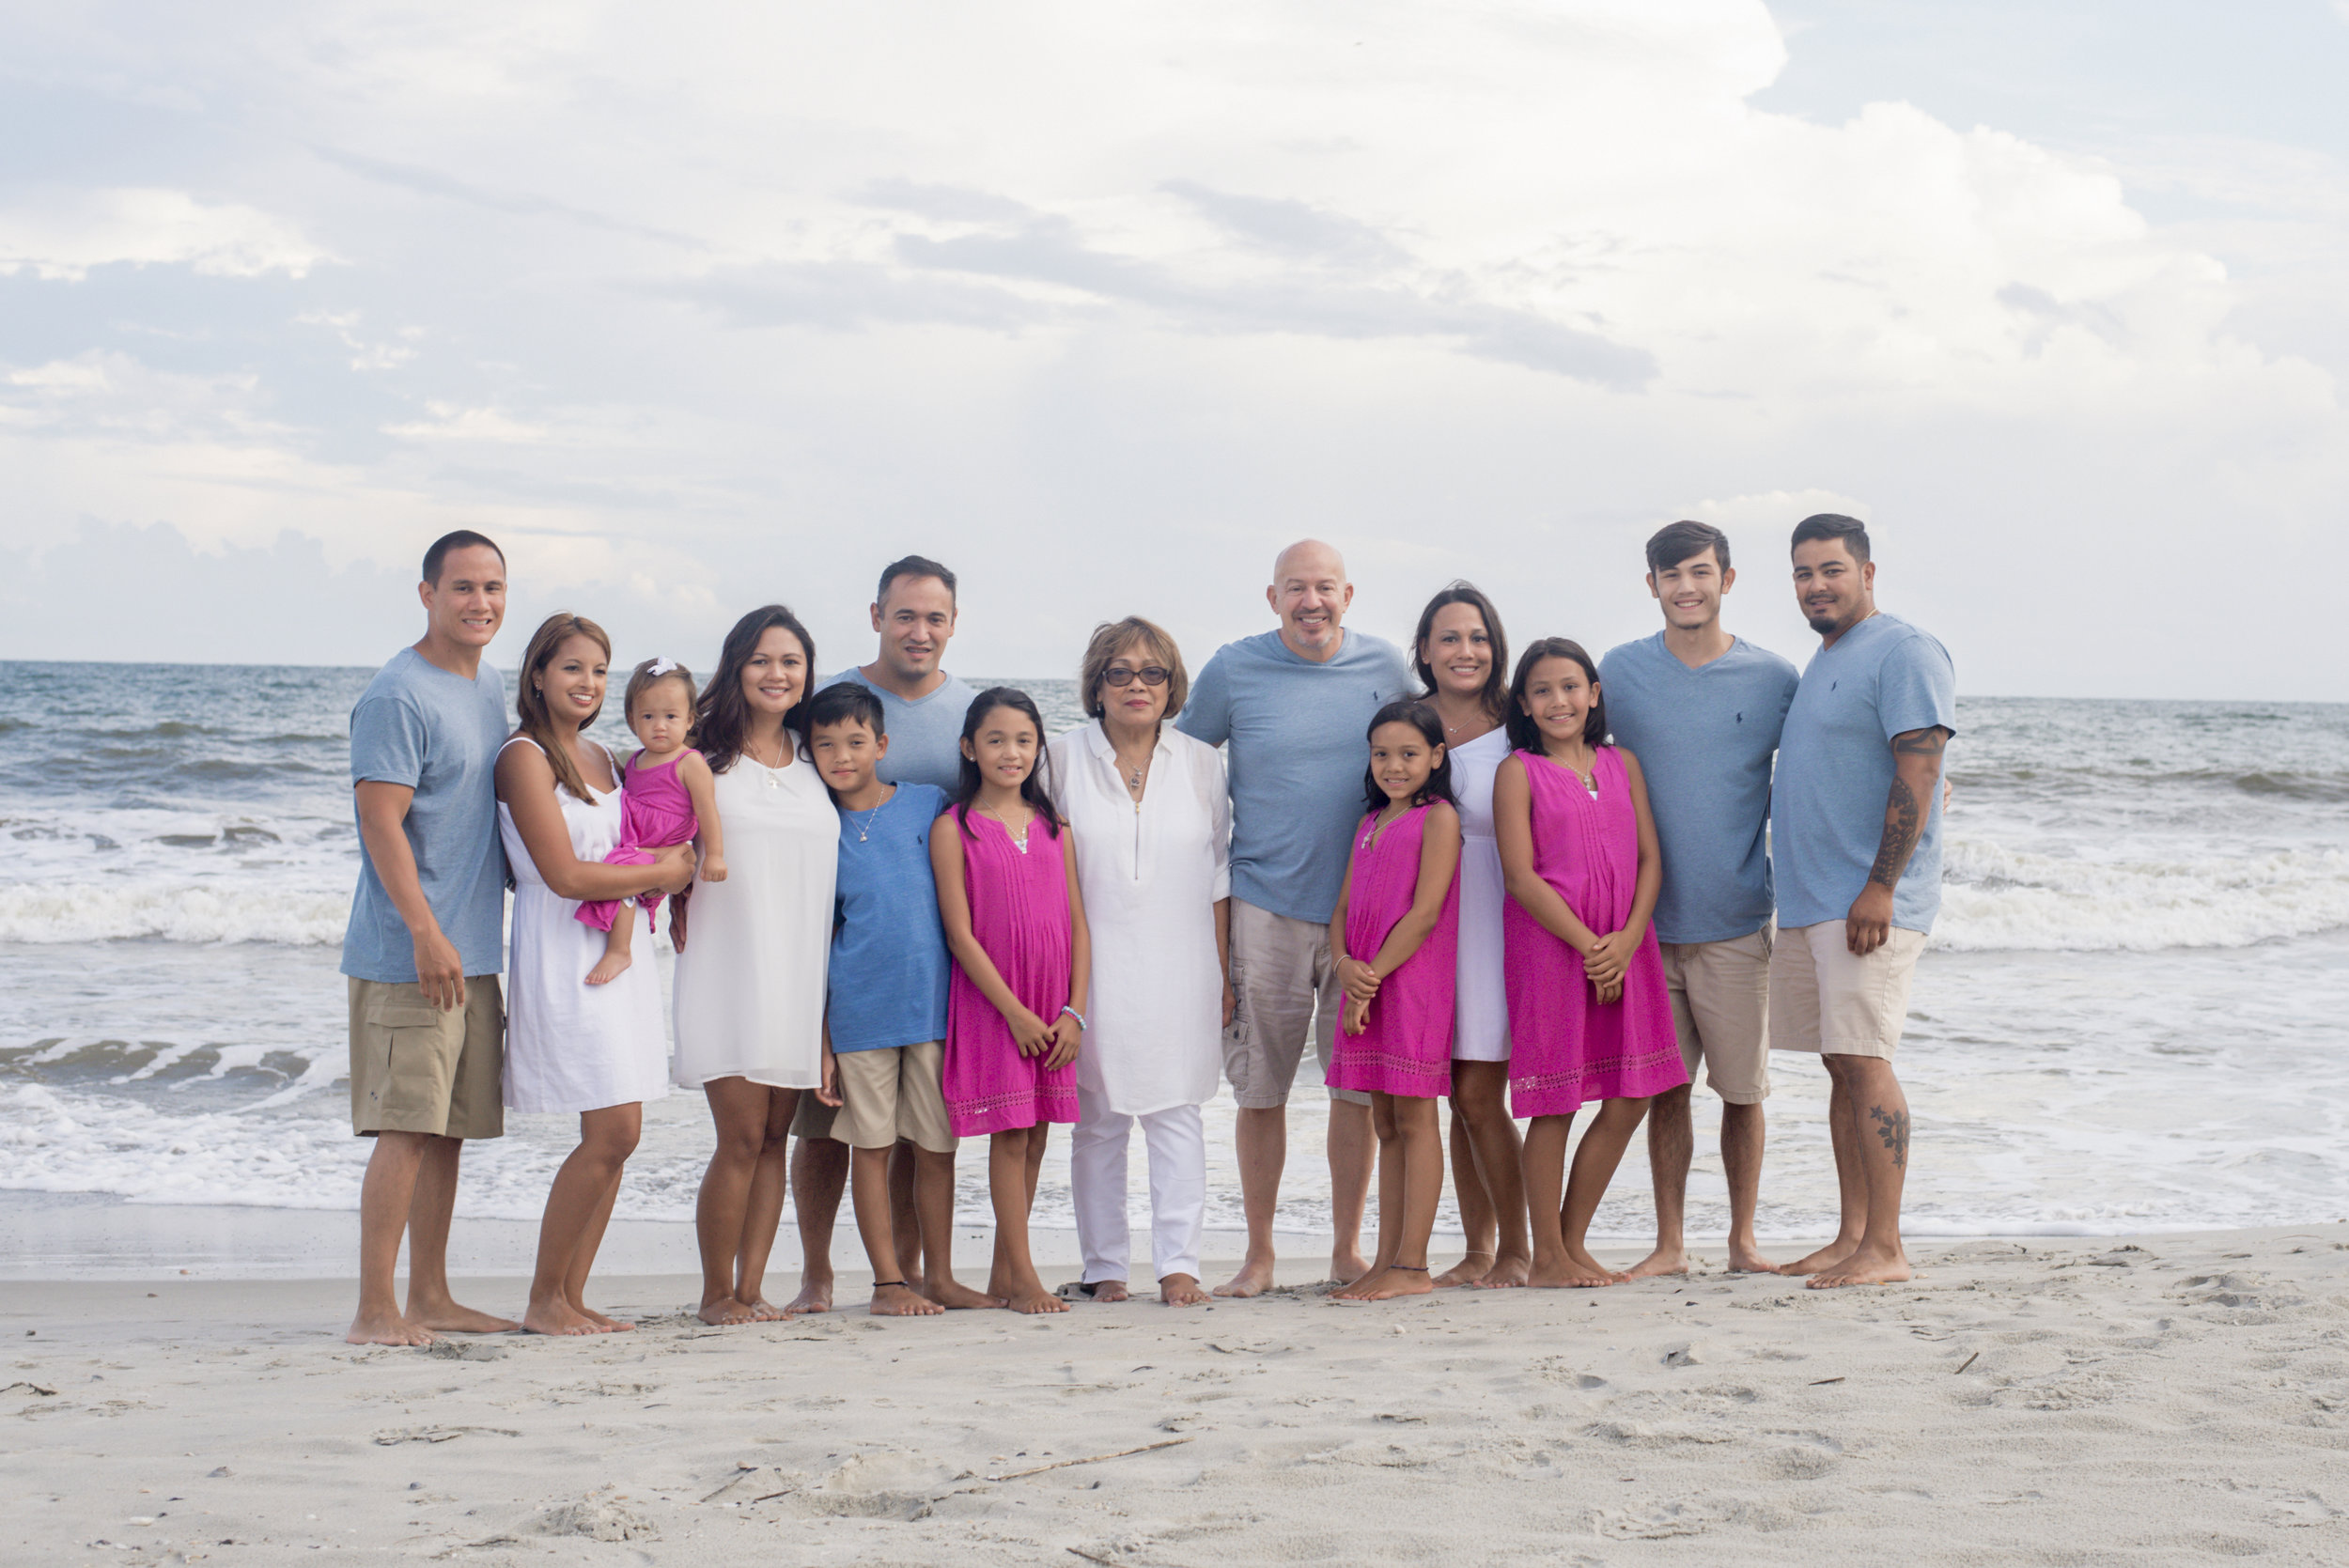 holden beach photographer poses extended family in front of ocean